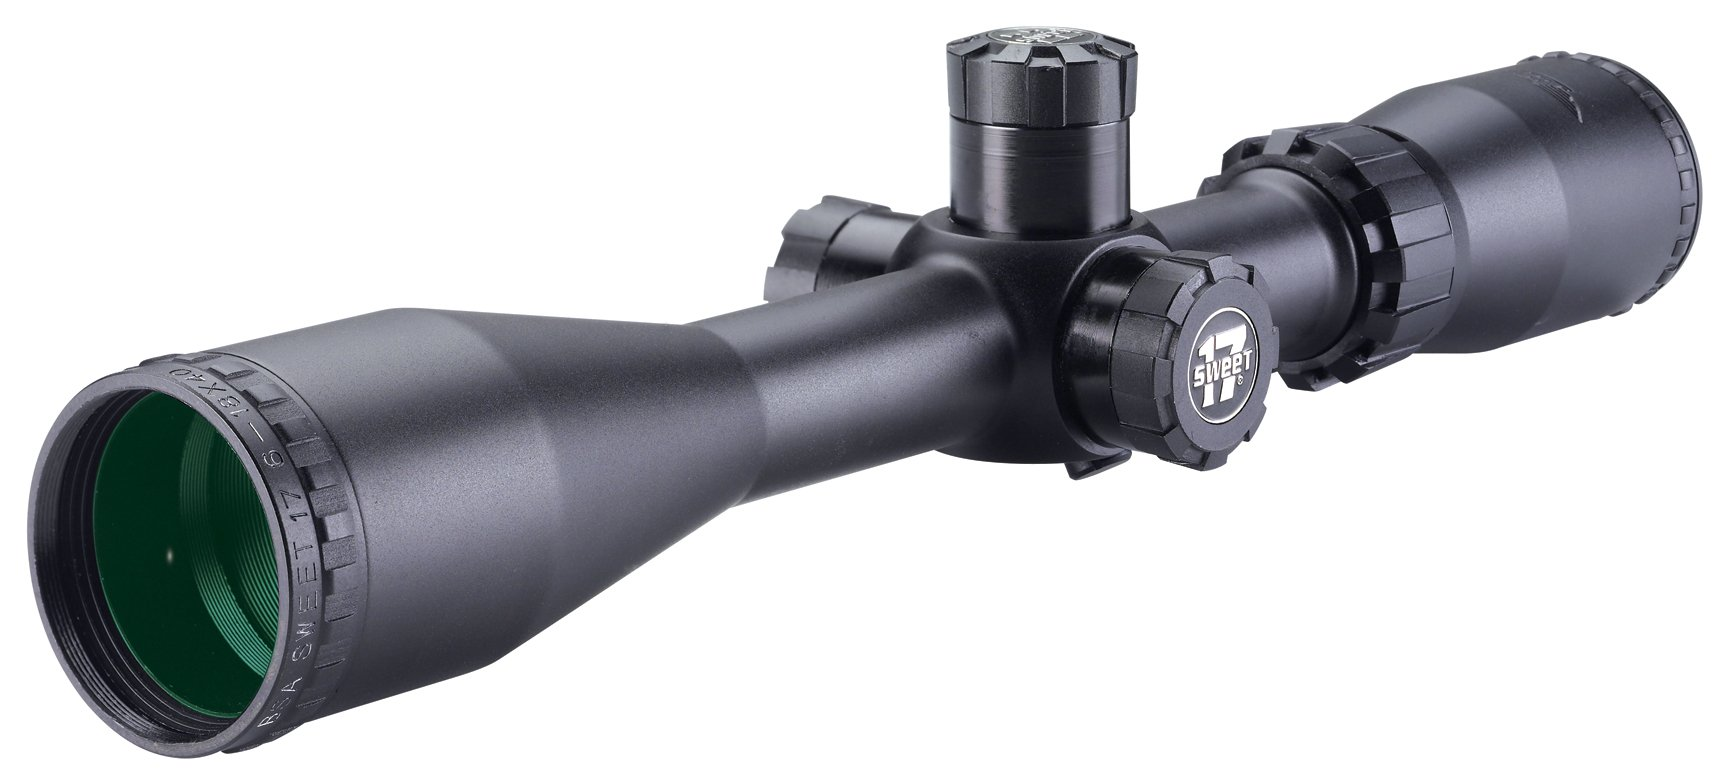 BSA S17-618X40SP 6-18X40 Sweet 17 Rifle Scope with Side Parallax Adjustment and Multi-Grain Turret by BSA